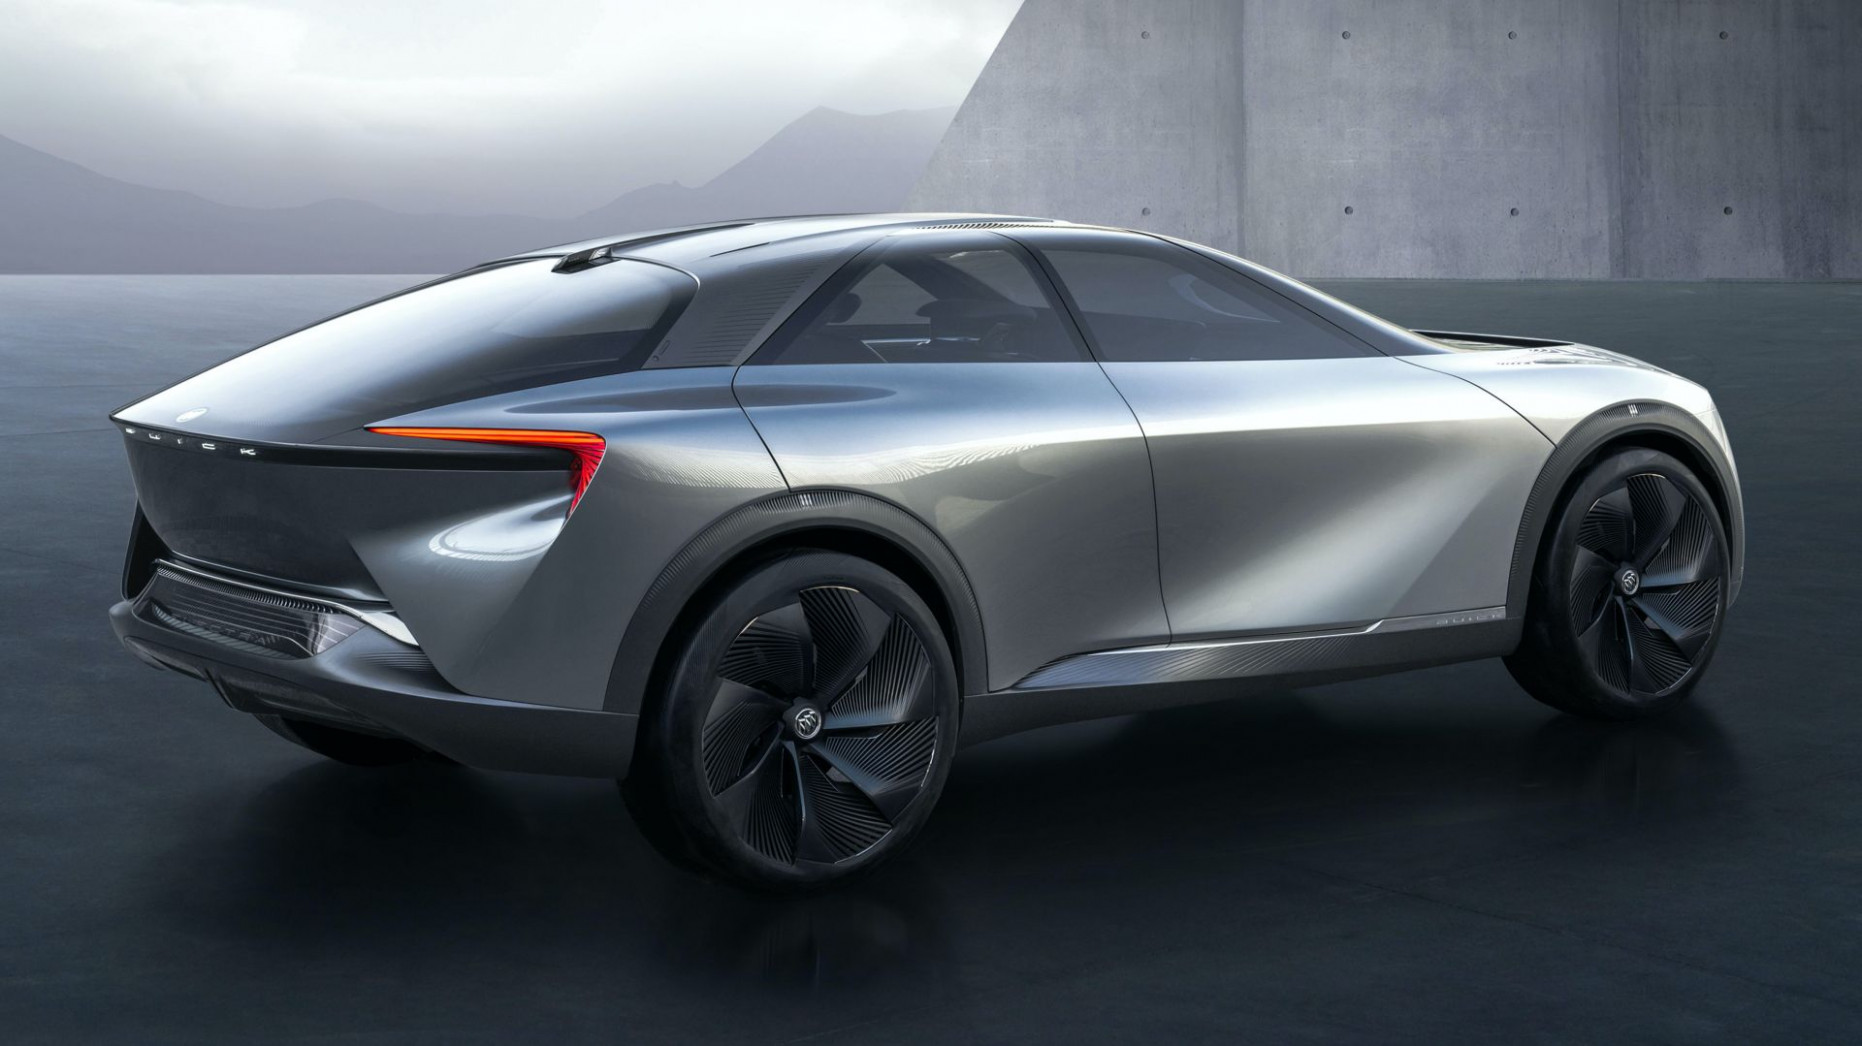 Exterior and Interior 2022 Buick Enspire